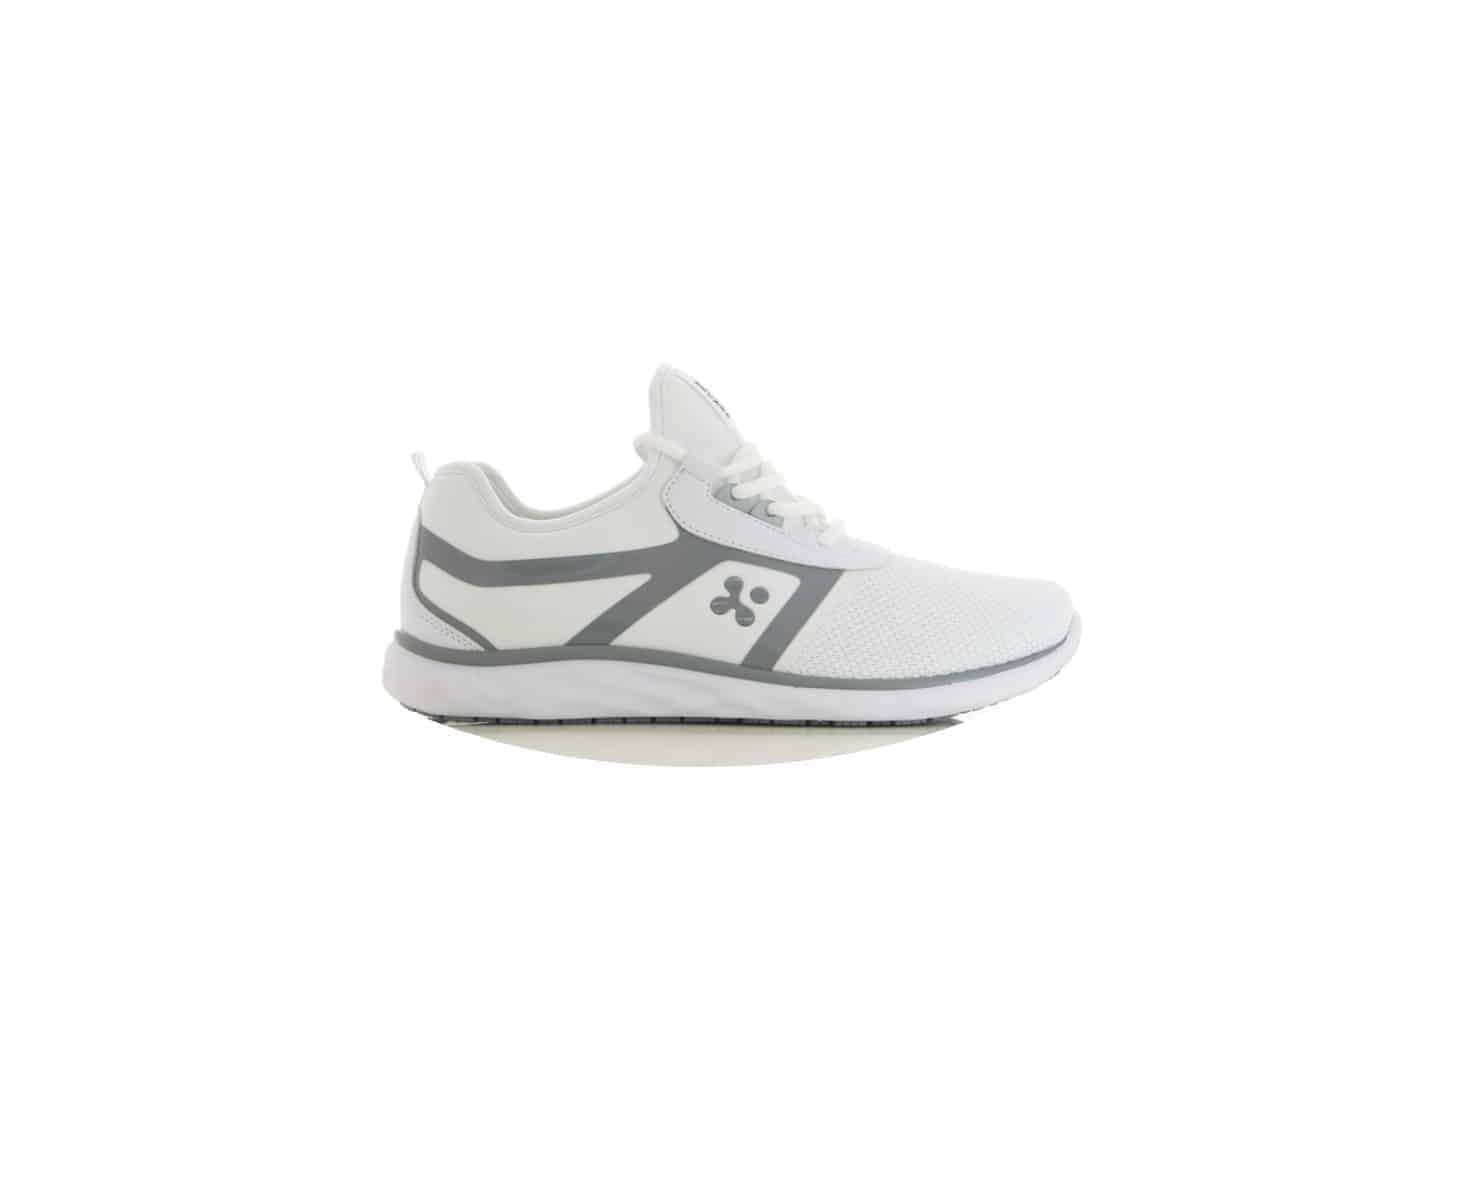 Oxypas 'Luca' Comfortable and Breathable Mesh Nursing Shoe for Men